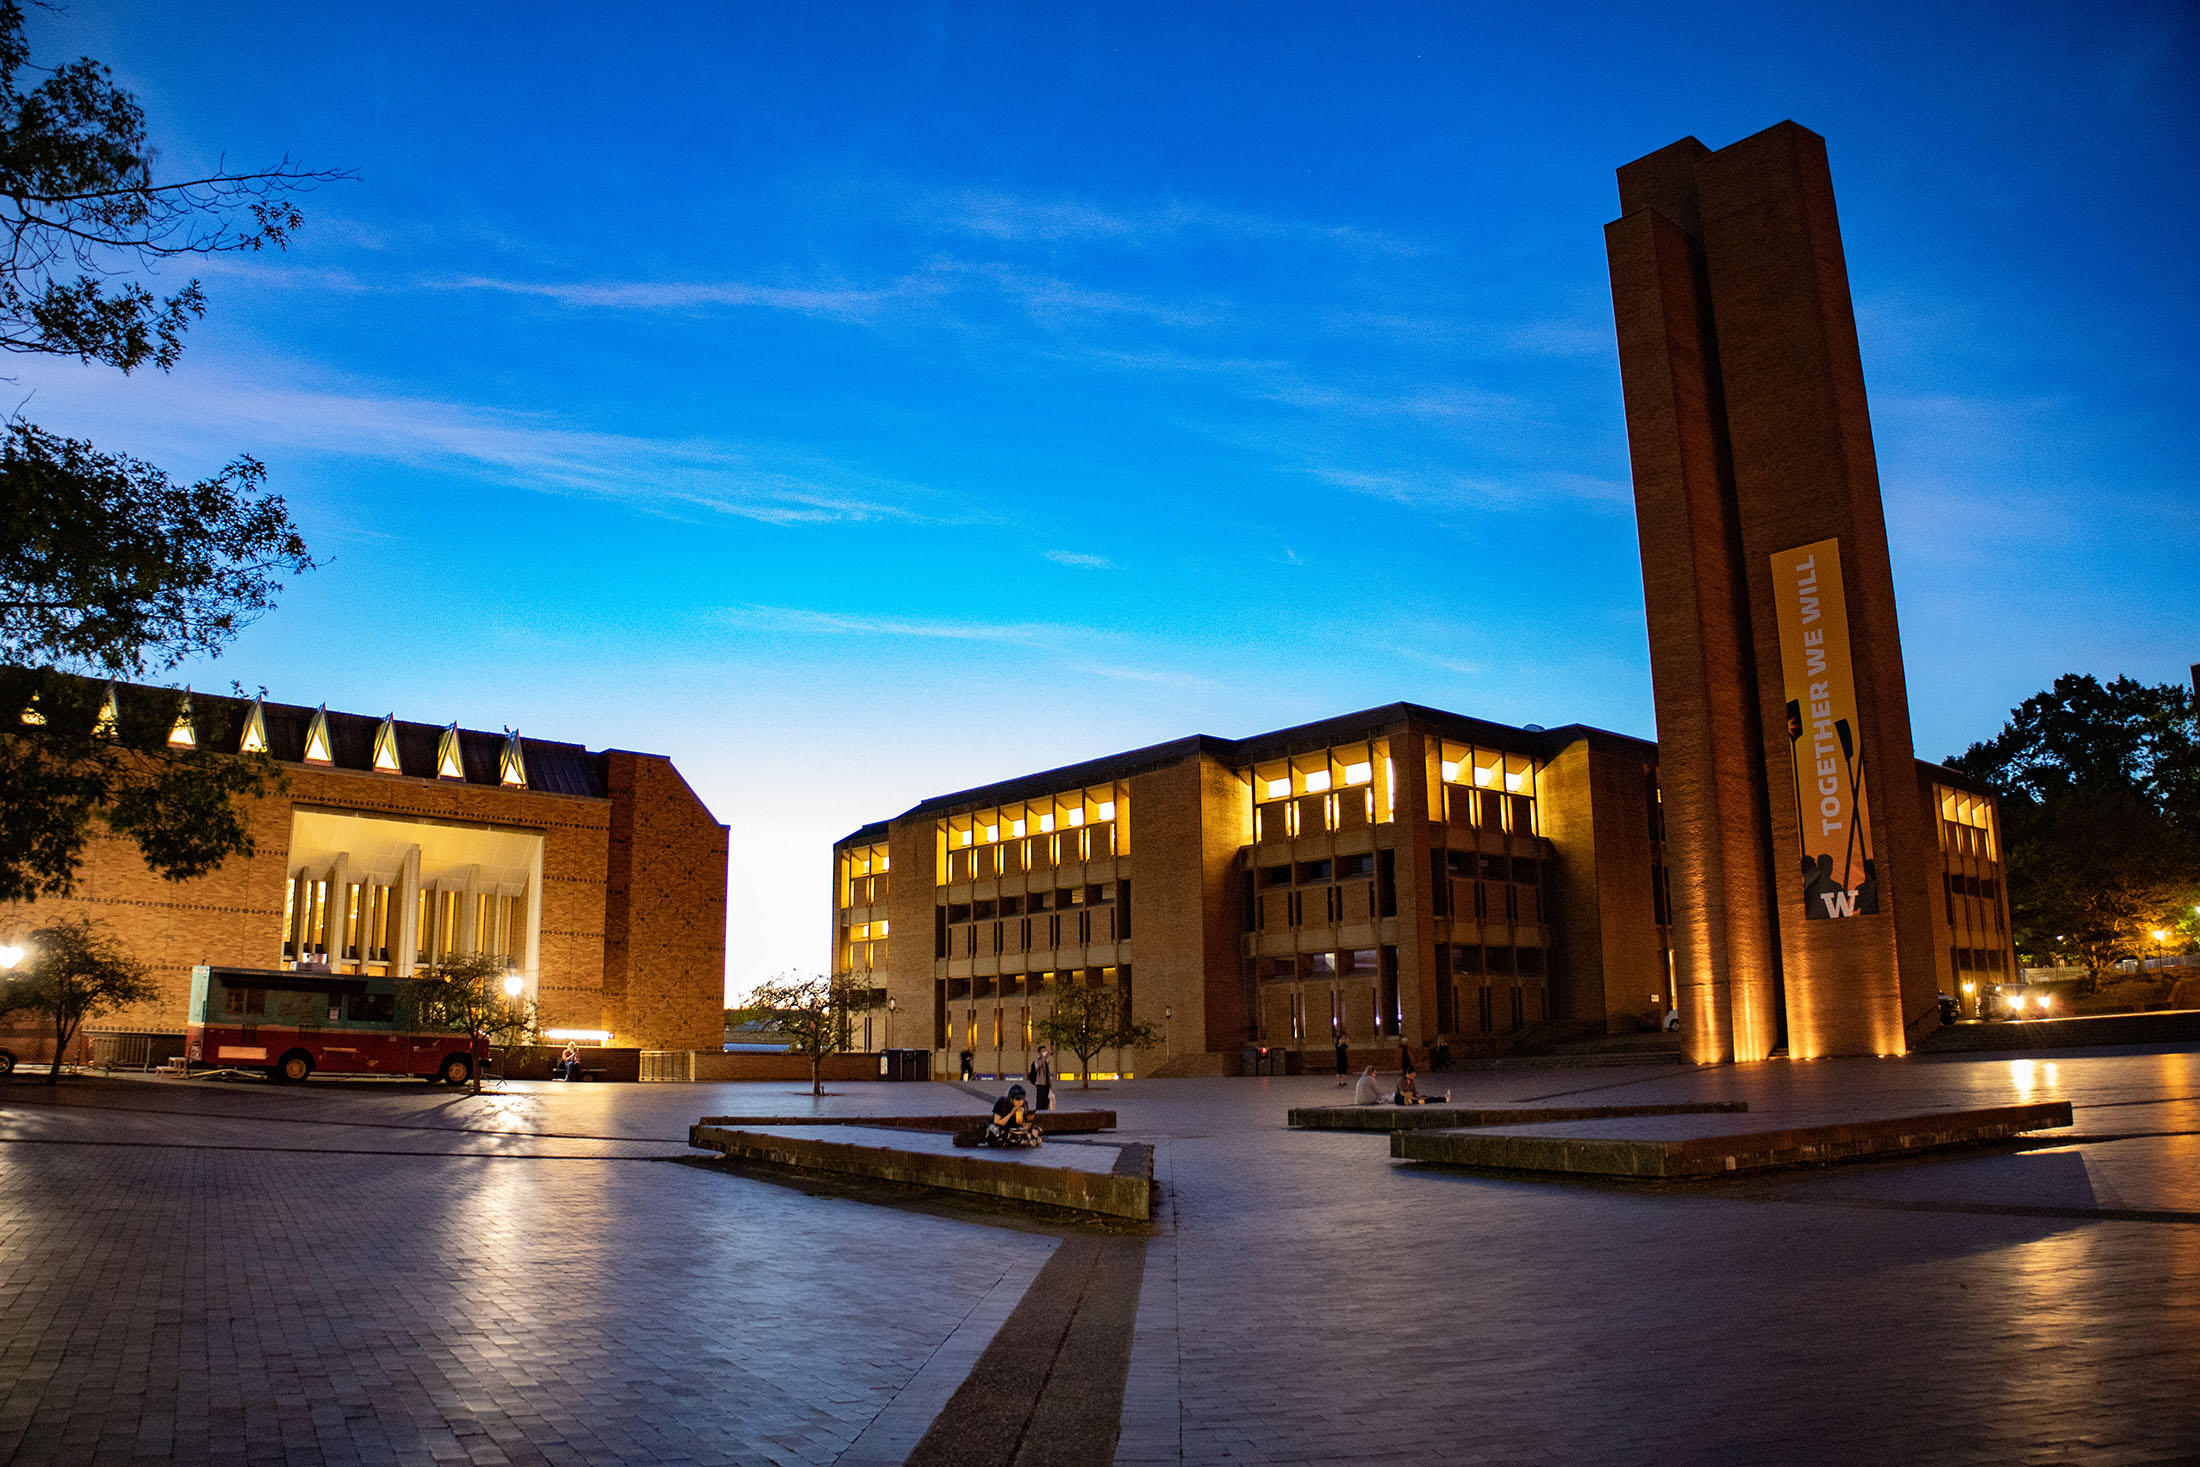 RED SQUARE, The epicenter of campus life, Red Square takes its name from the reddish-brown bricks that compose it.